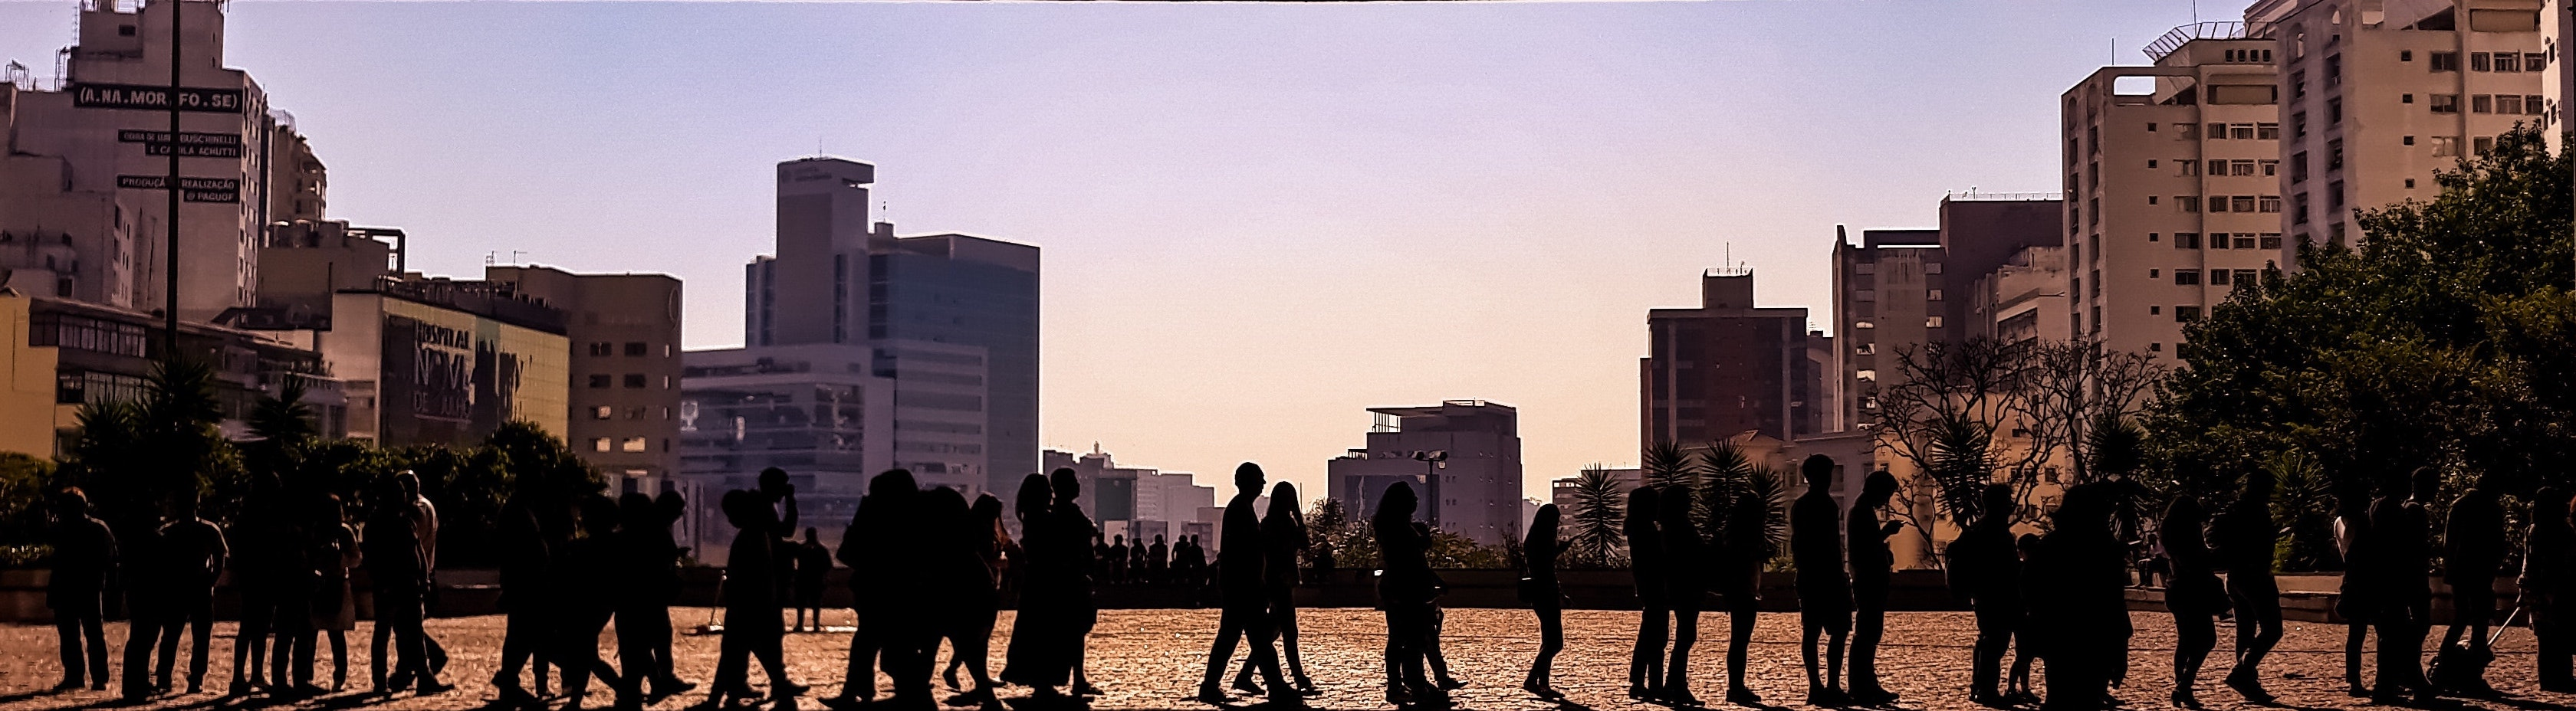 silhouette-of-people-in-queue-2957602